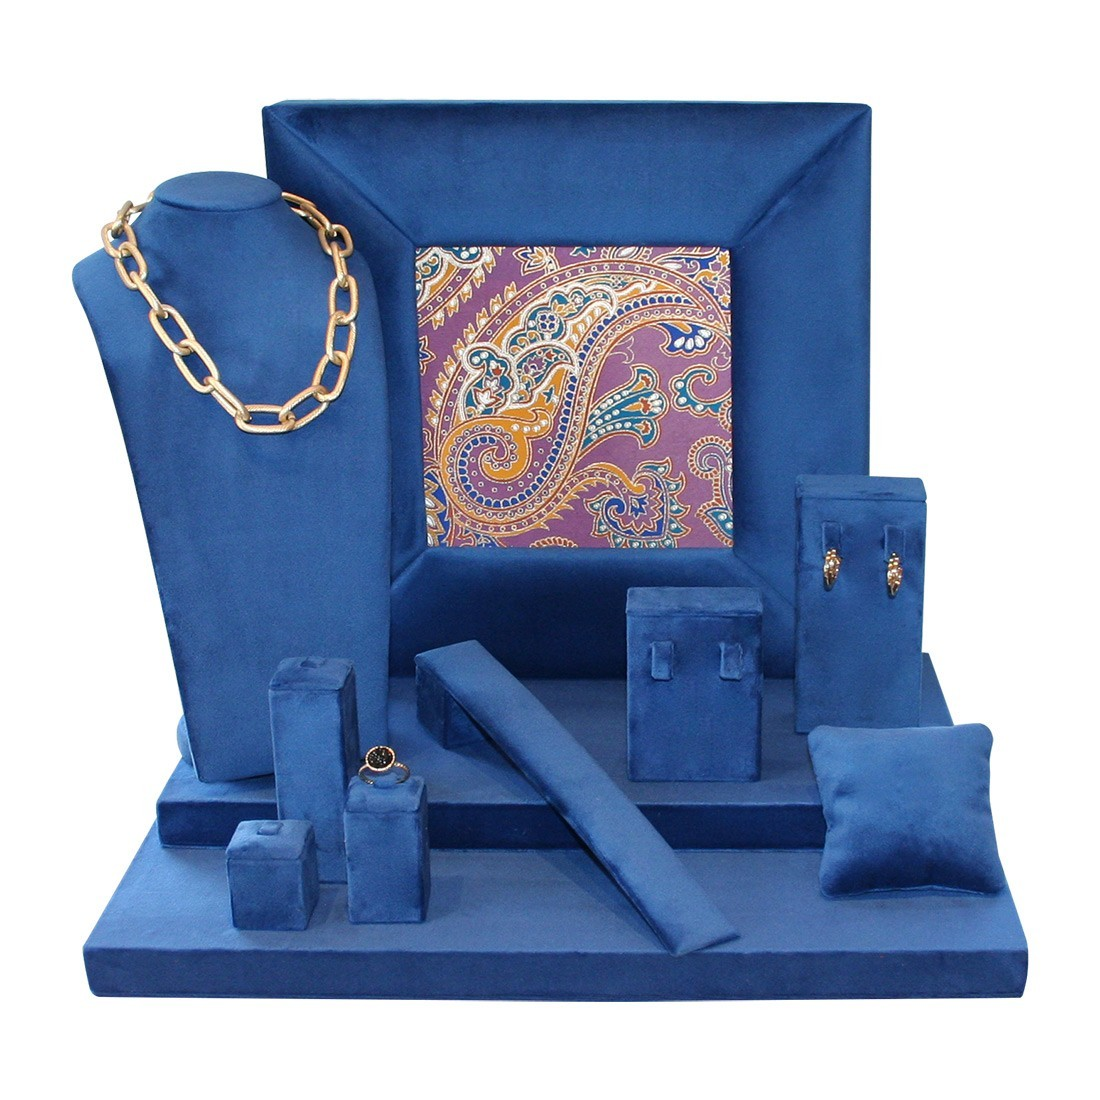 Velvet jewelry display set in blue with cashmere print